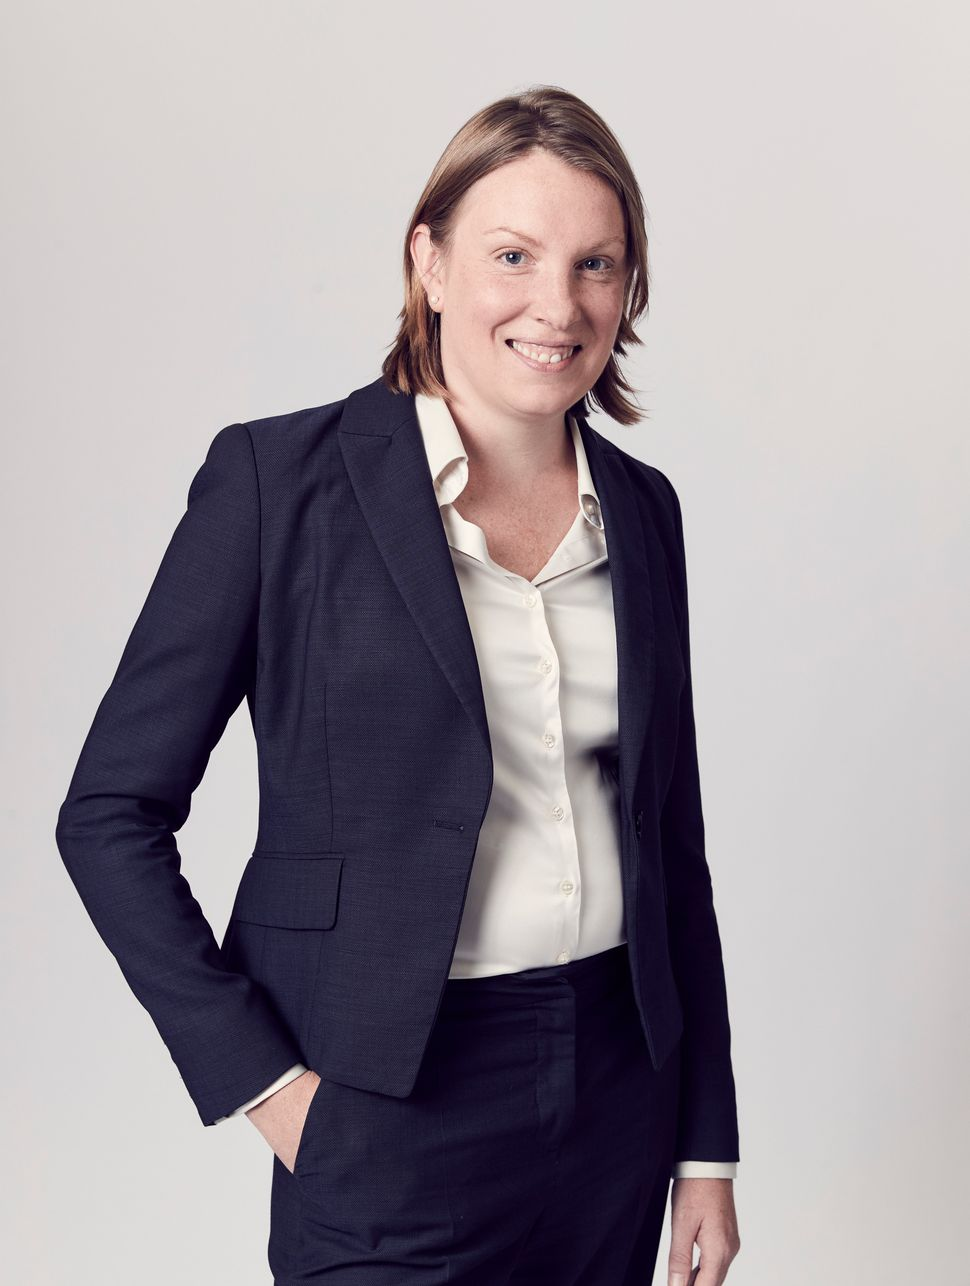 The UK's Minister for Loneliness, Tracey Crouch